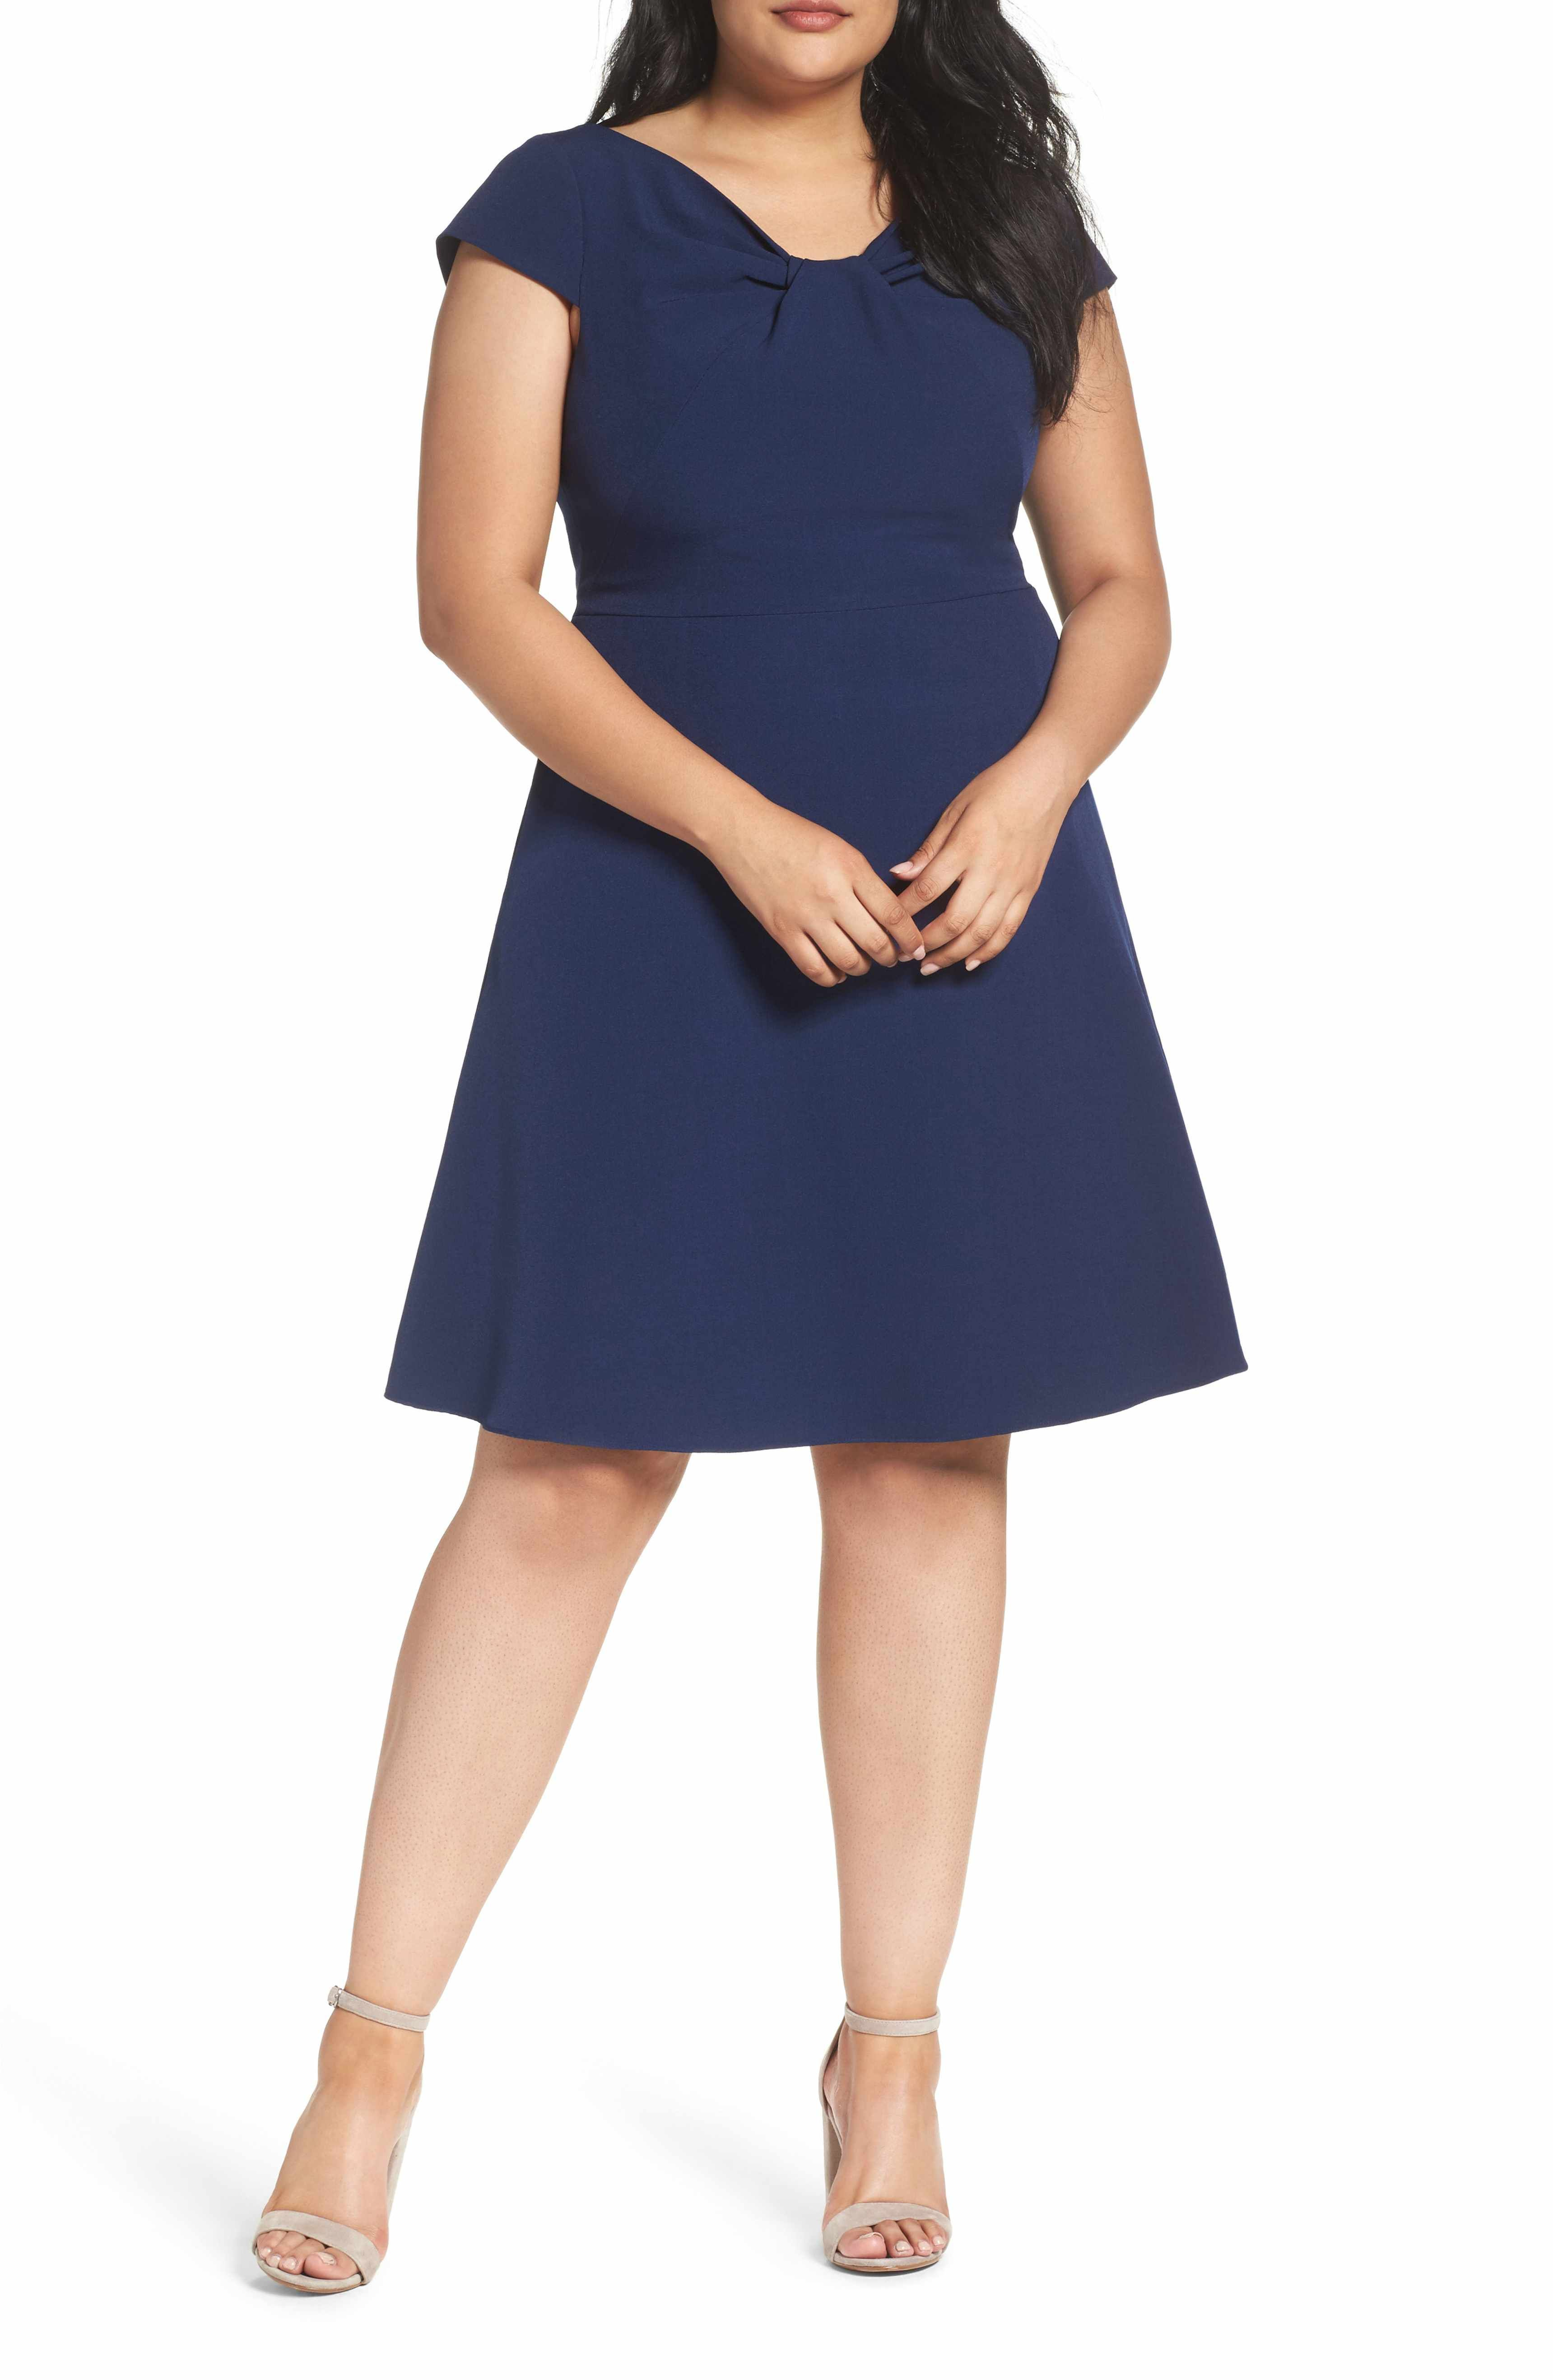 Main Image Adrianna Papell Drape Neck Fit & Flare Dress Plus Size